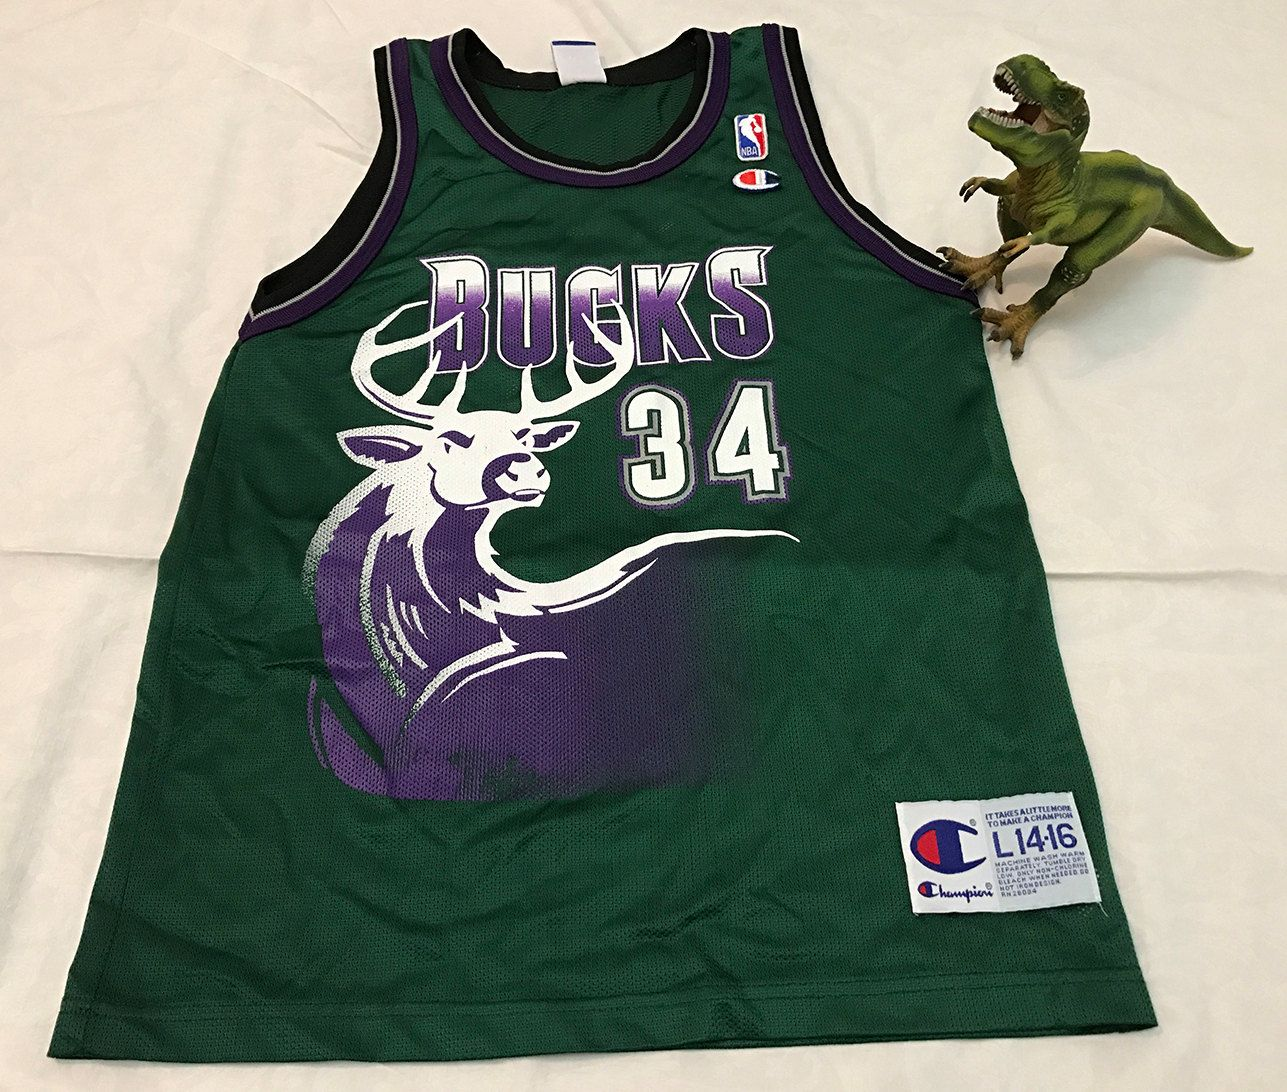 355284b69c8 Vintage 1995-1996 Champion Milwaukee Bucks Ray Allen Alternate NBA Jersey  This jersey is in excellent used condition Size  Youth Large (14-16)  Measurements  ...